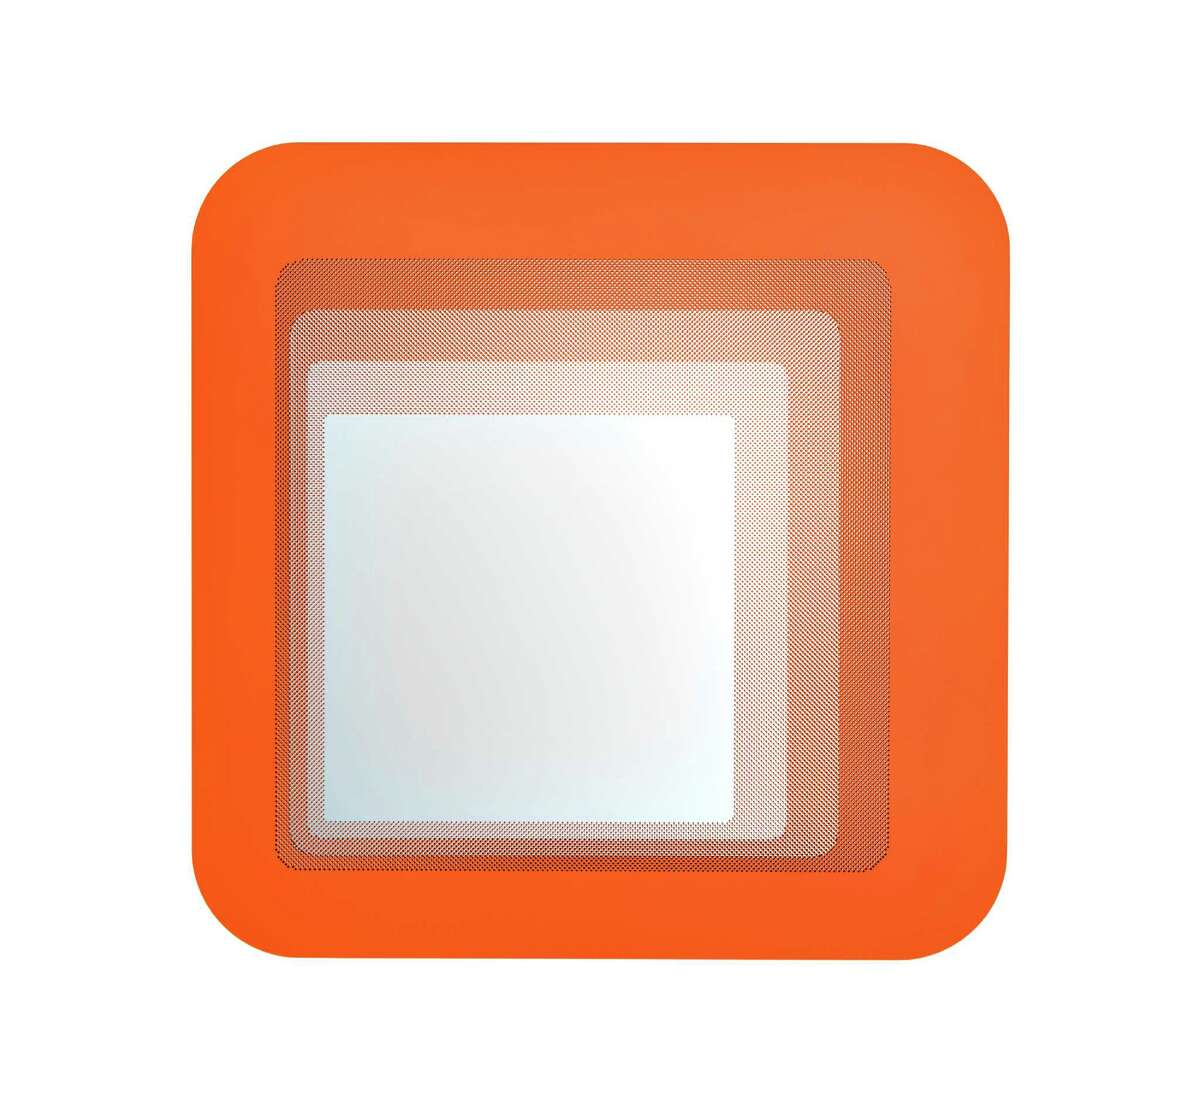 A stick-on orange Hylkje mirror, $4.99 at Ikea, can affix to any wall.